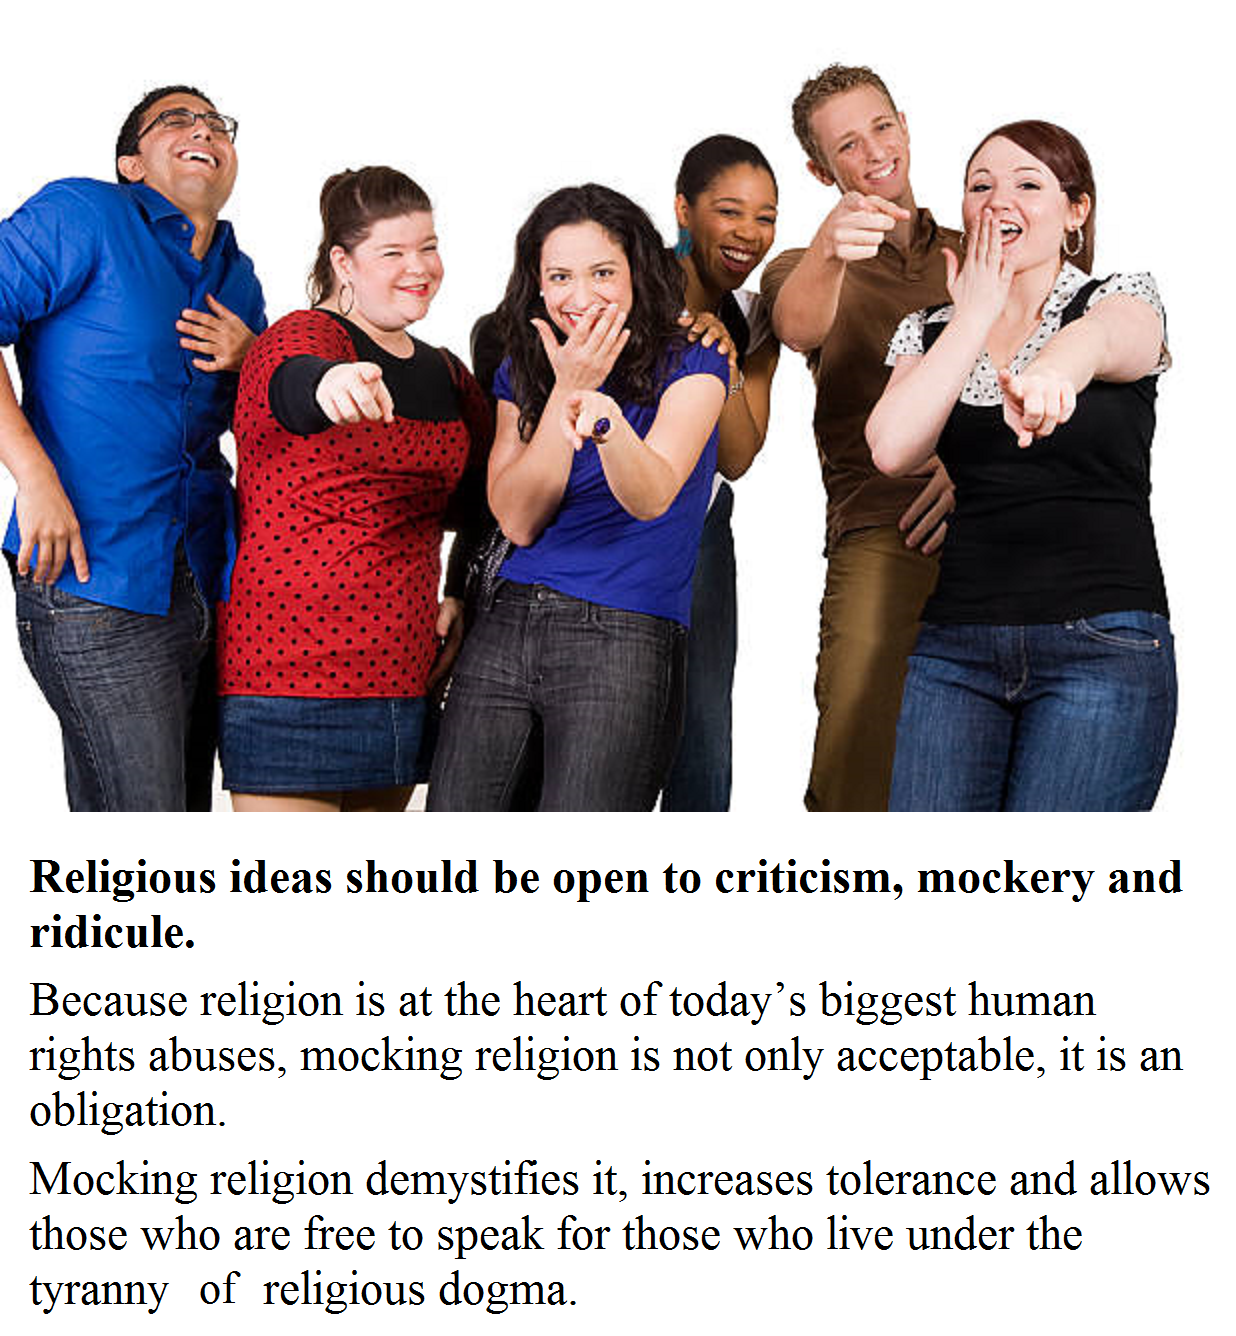 Religious ideas should be open to criticism, mockery and ridicule. Because religion is at the heart of today's biggest human rights abuses, mocking religion is not only acceptable, it is an obligation. Mocking religion demystifies it, increases tolerance and allows those who are free to speak for those who live under the tyrannyof religious dogma. Making fun of religion also encourages its disassociation from politics. Not Mocking Religion Is an Assault on Free Speech.